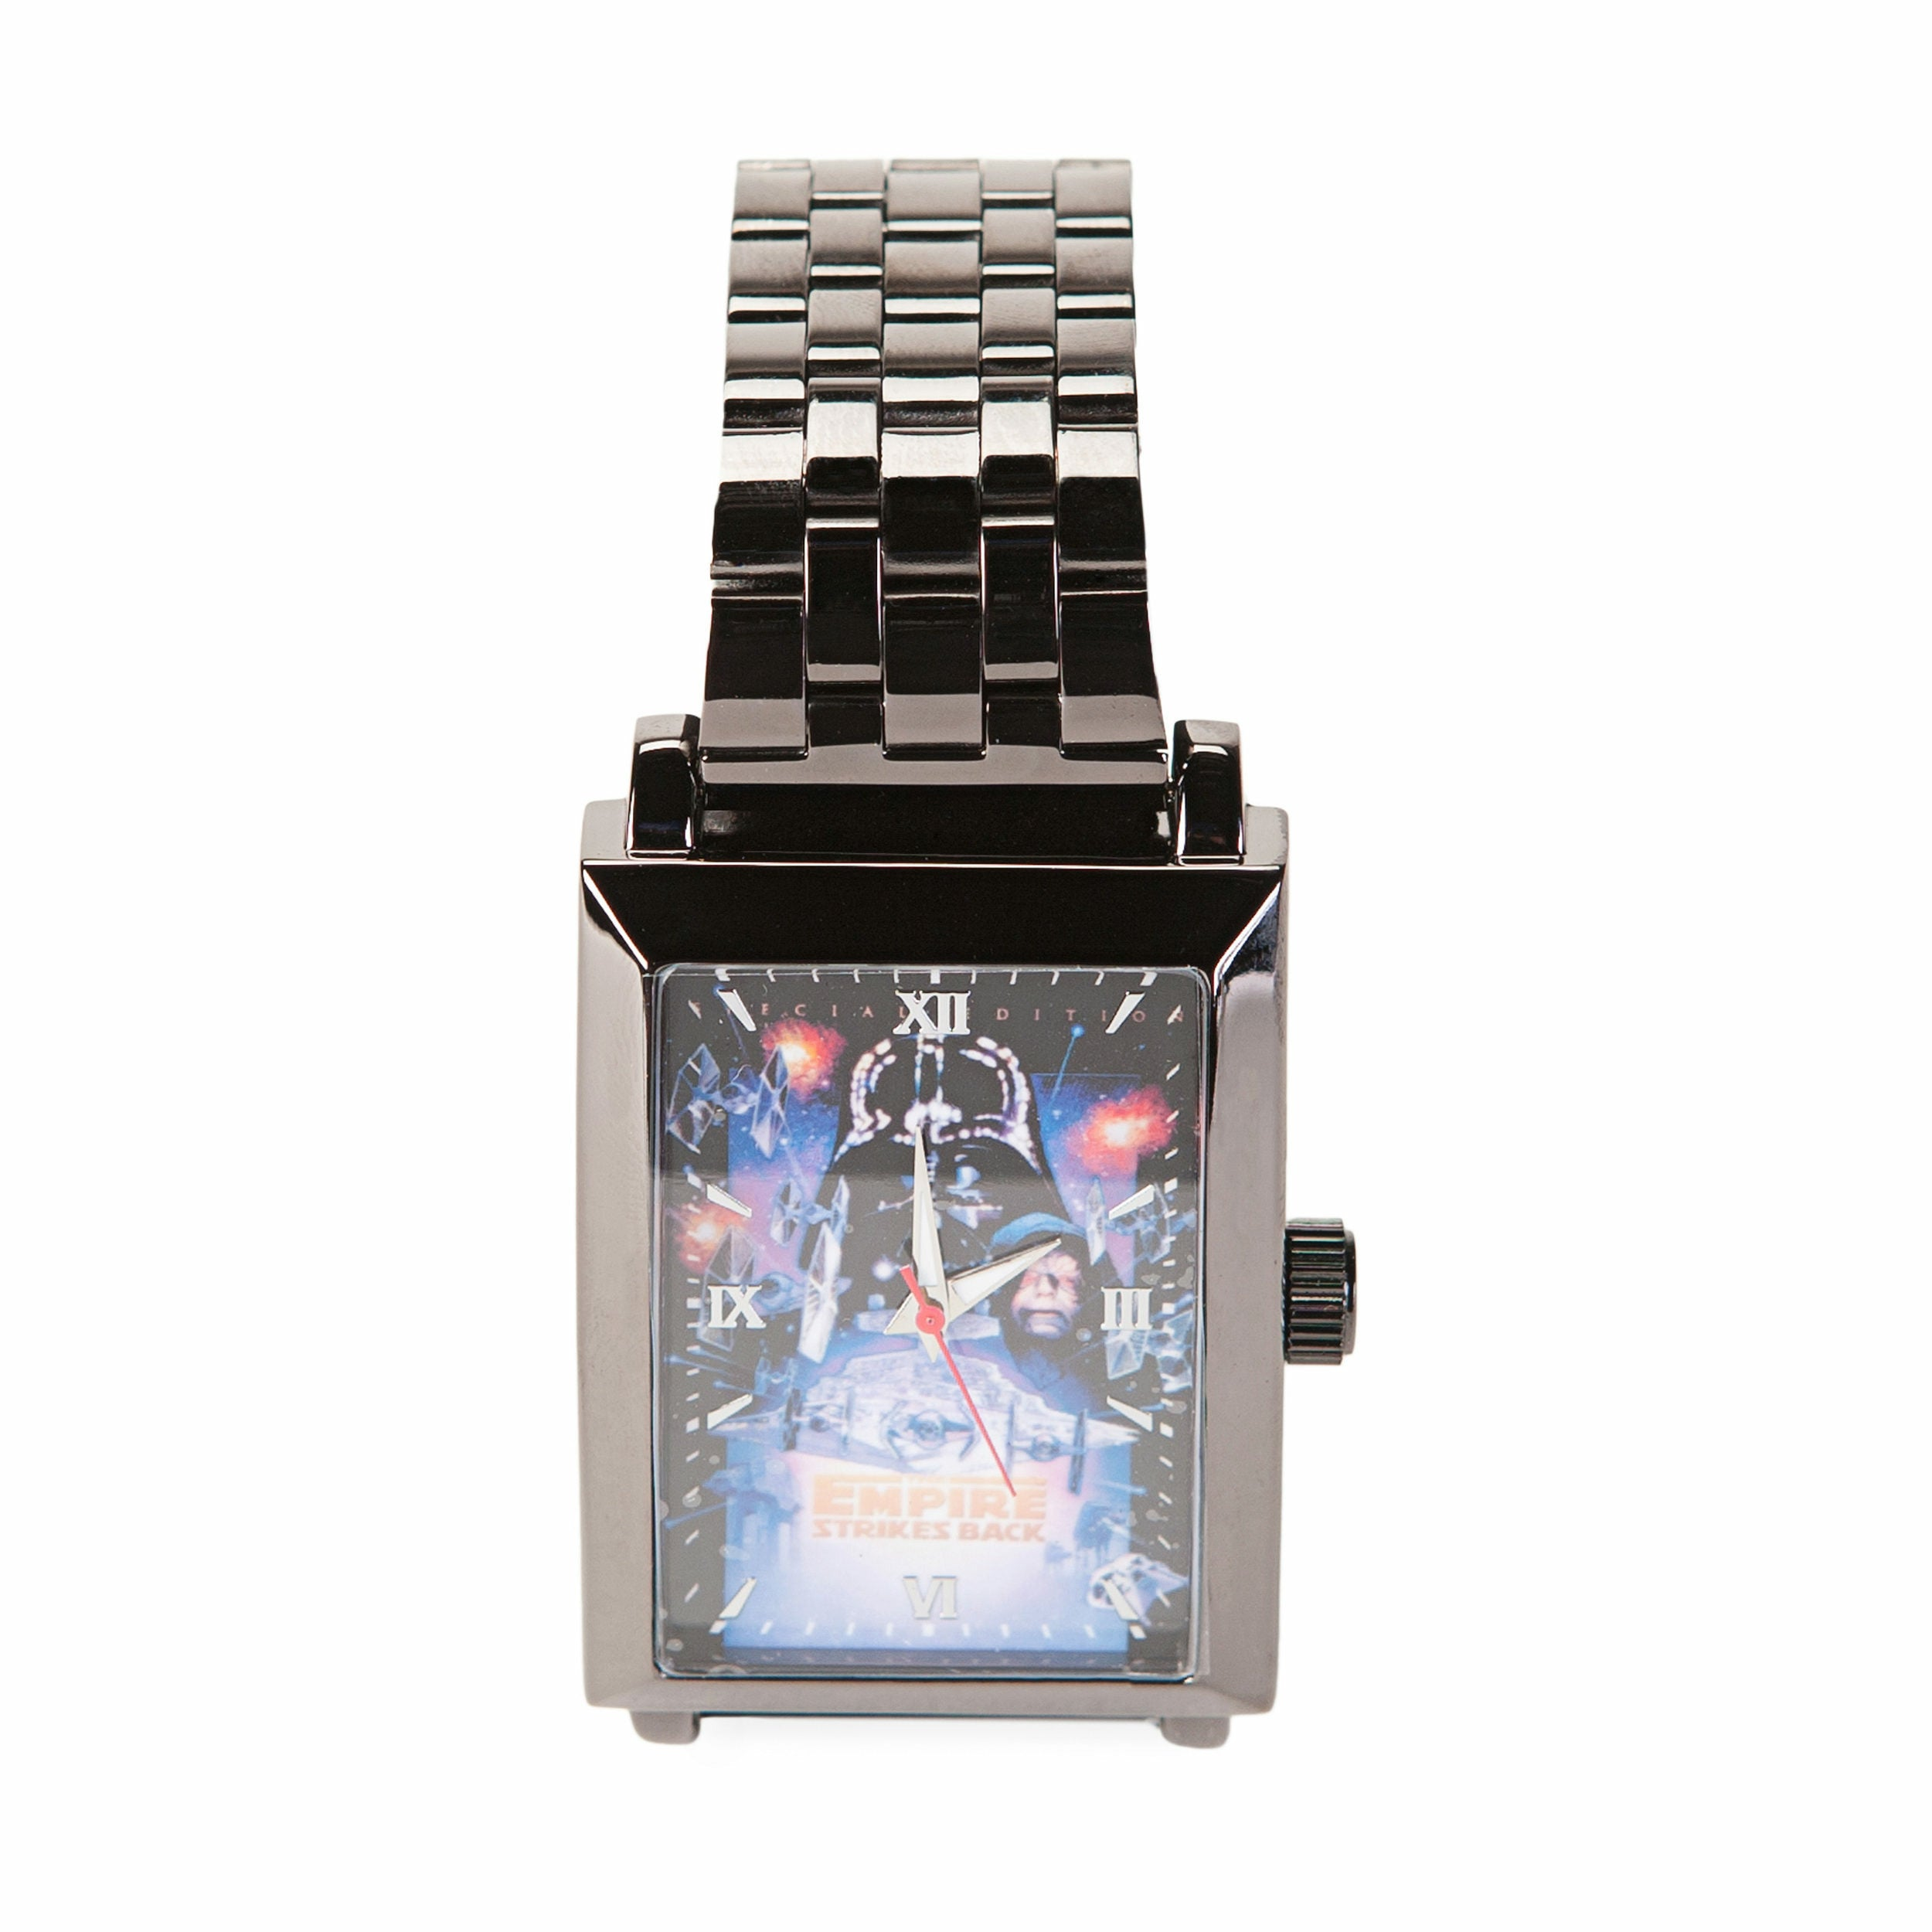 Star Wars Vol. 2 The Empire Strikes Back Square Frame Metal Wrist Watch